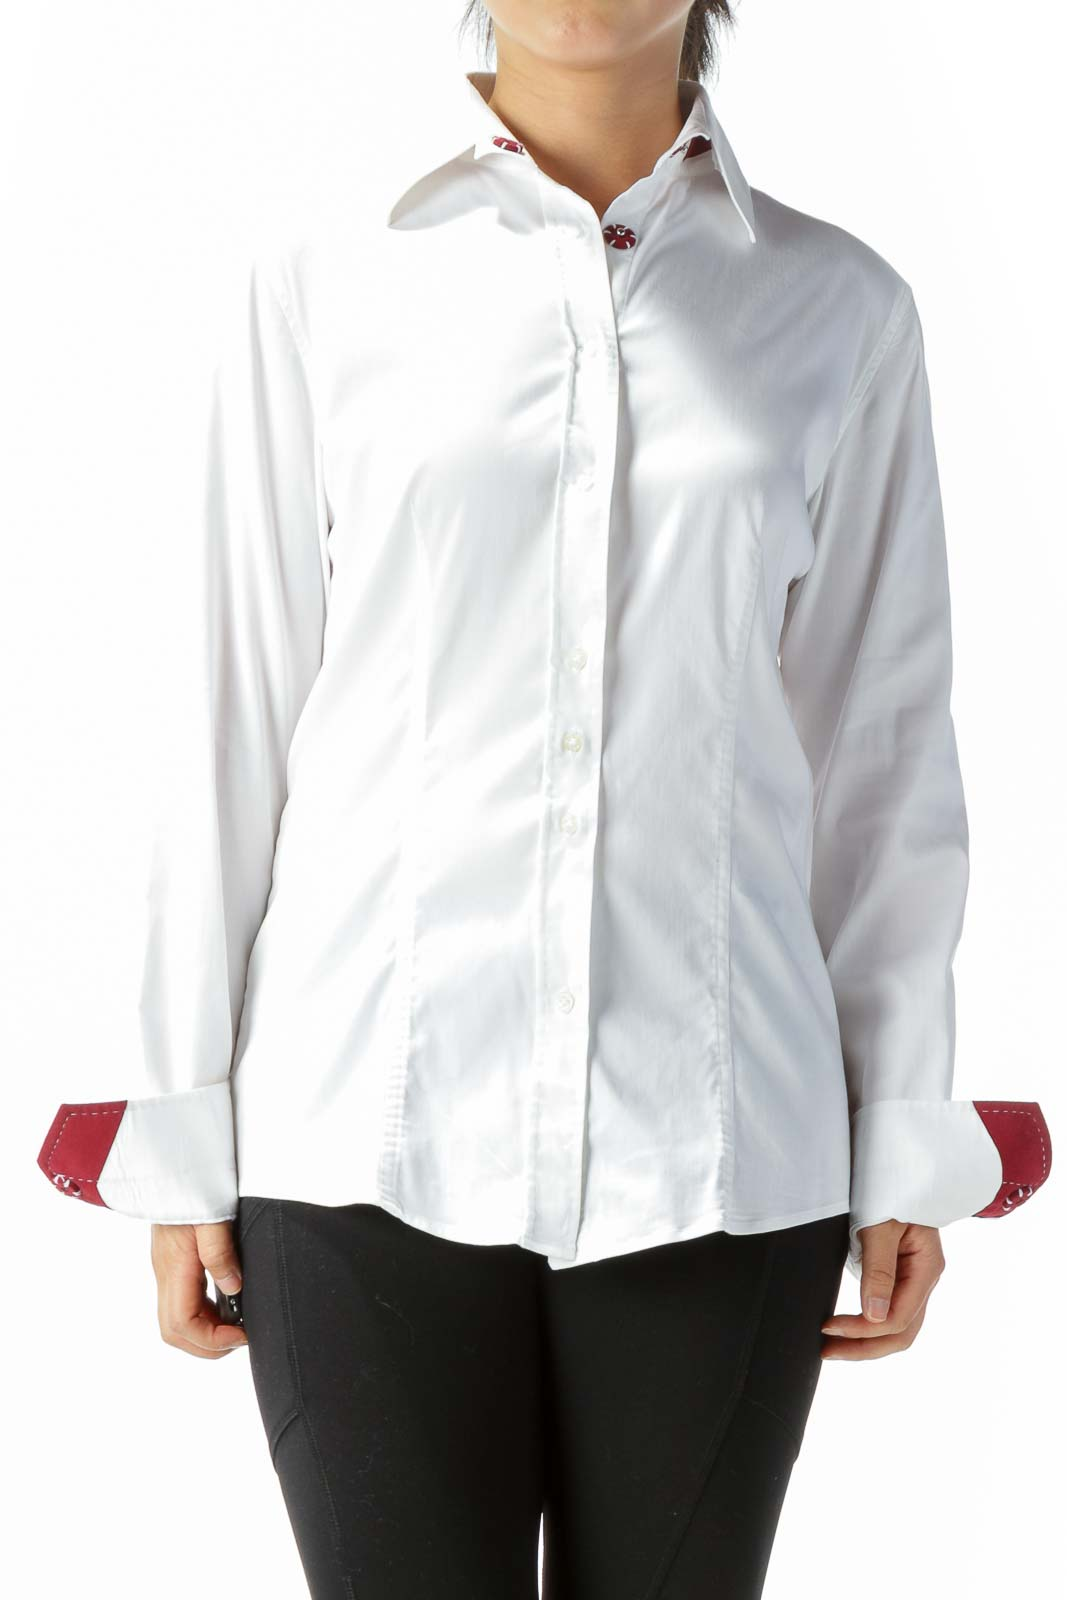 White Burgundy Red Accents Shirt Front